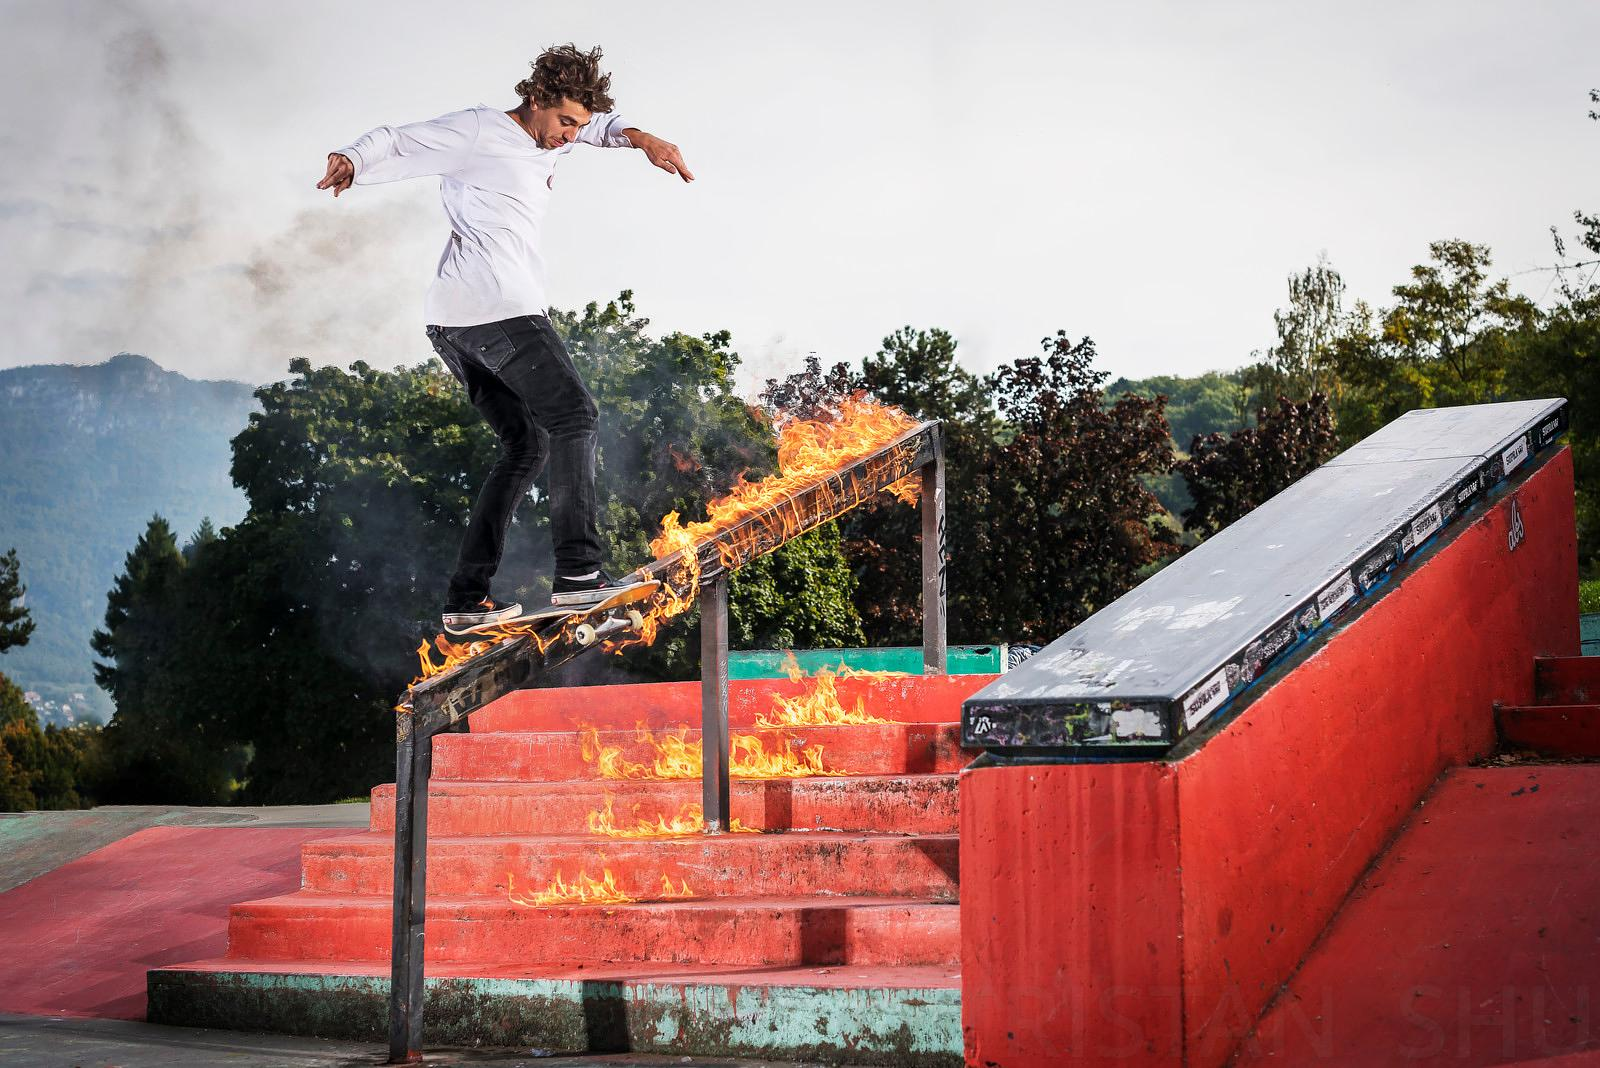 Smokin Frontside Boardslide with Tom Lafait